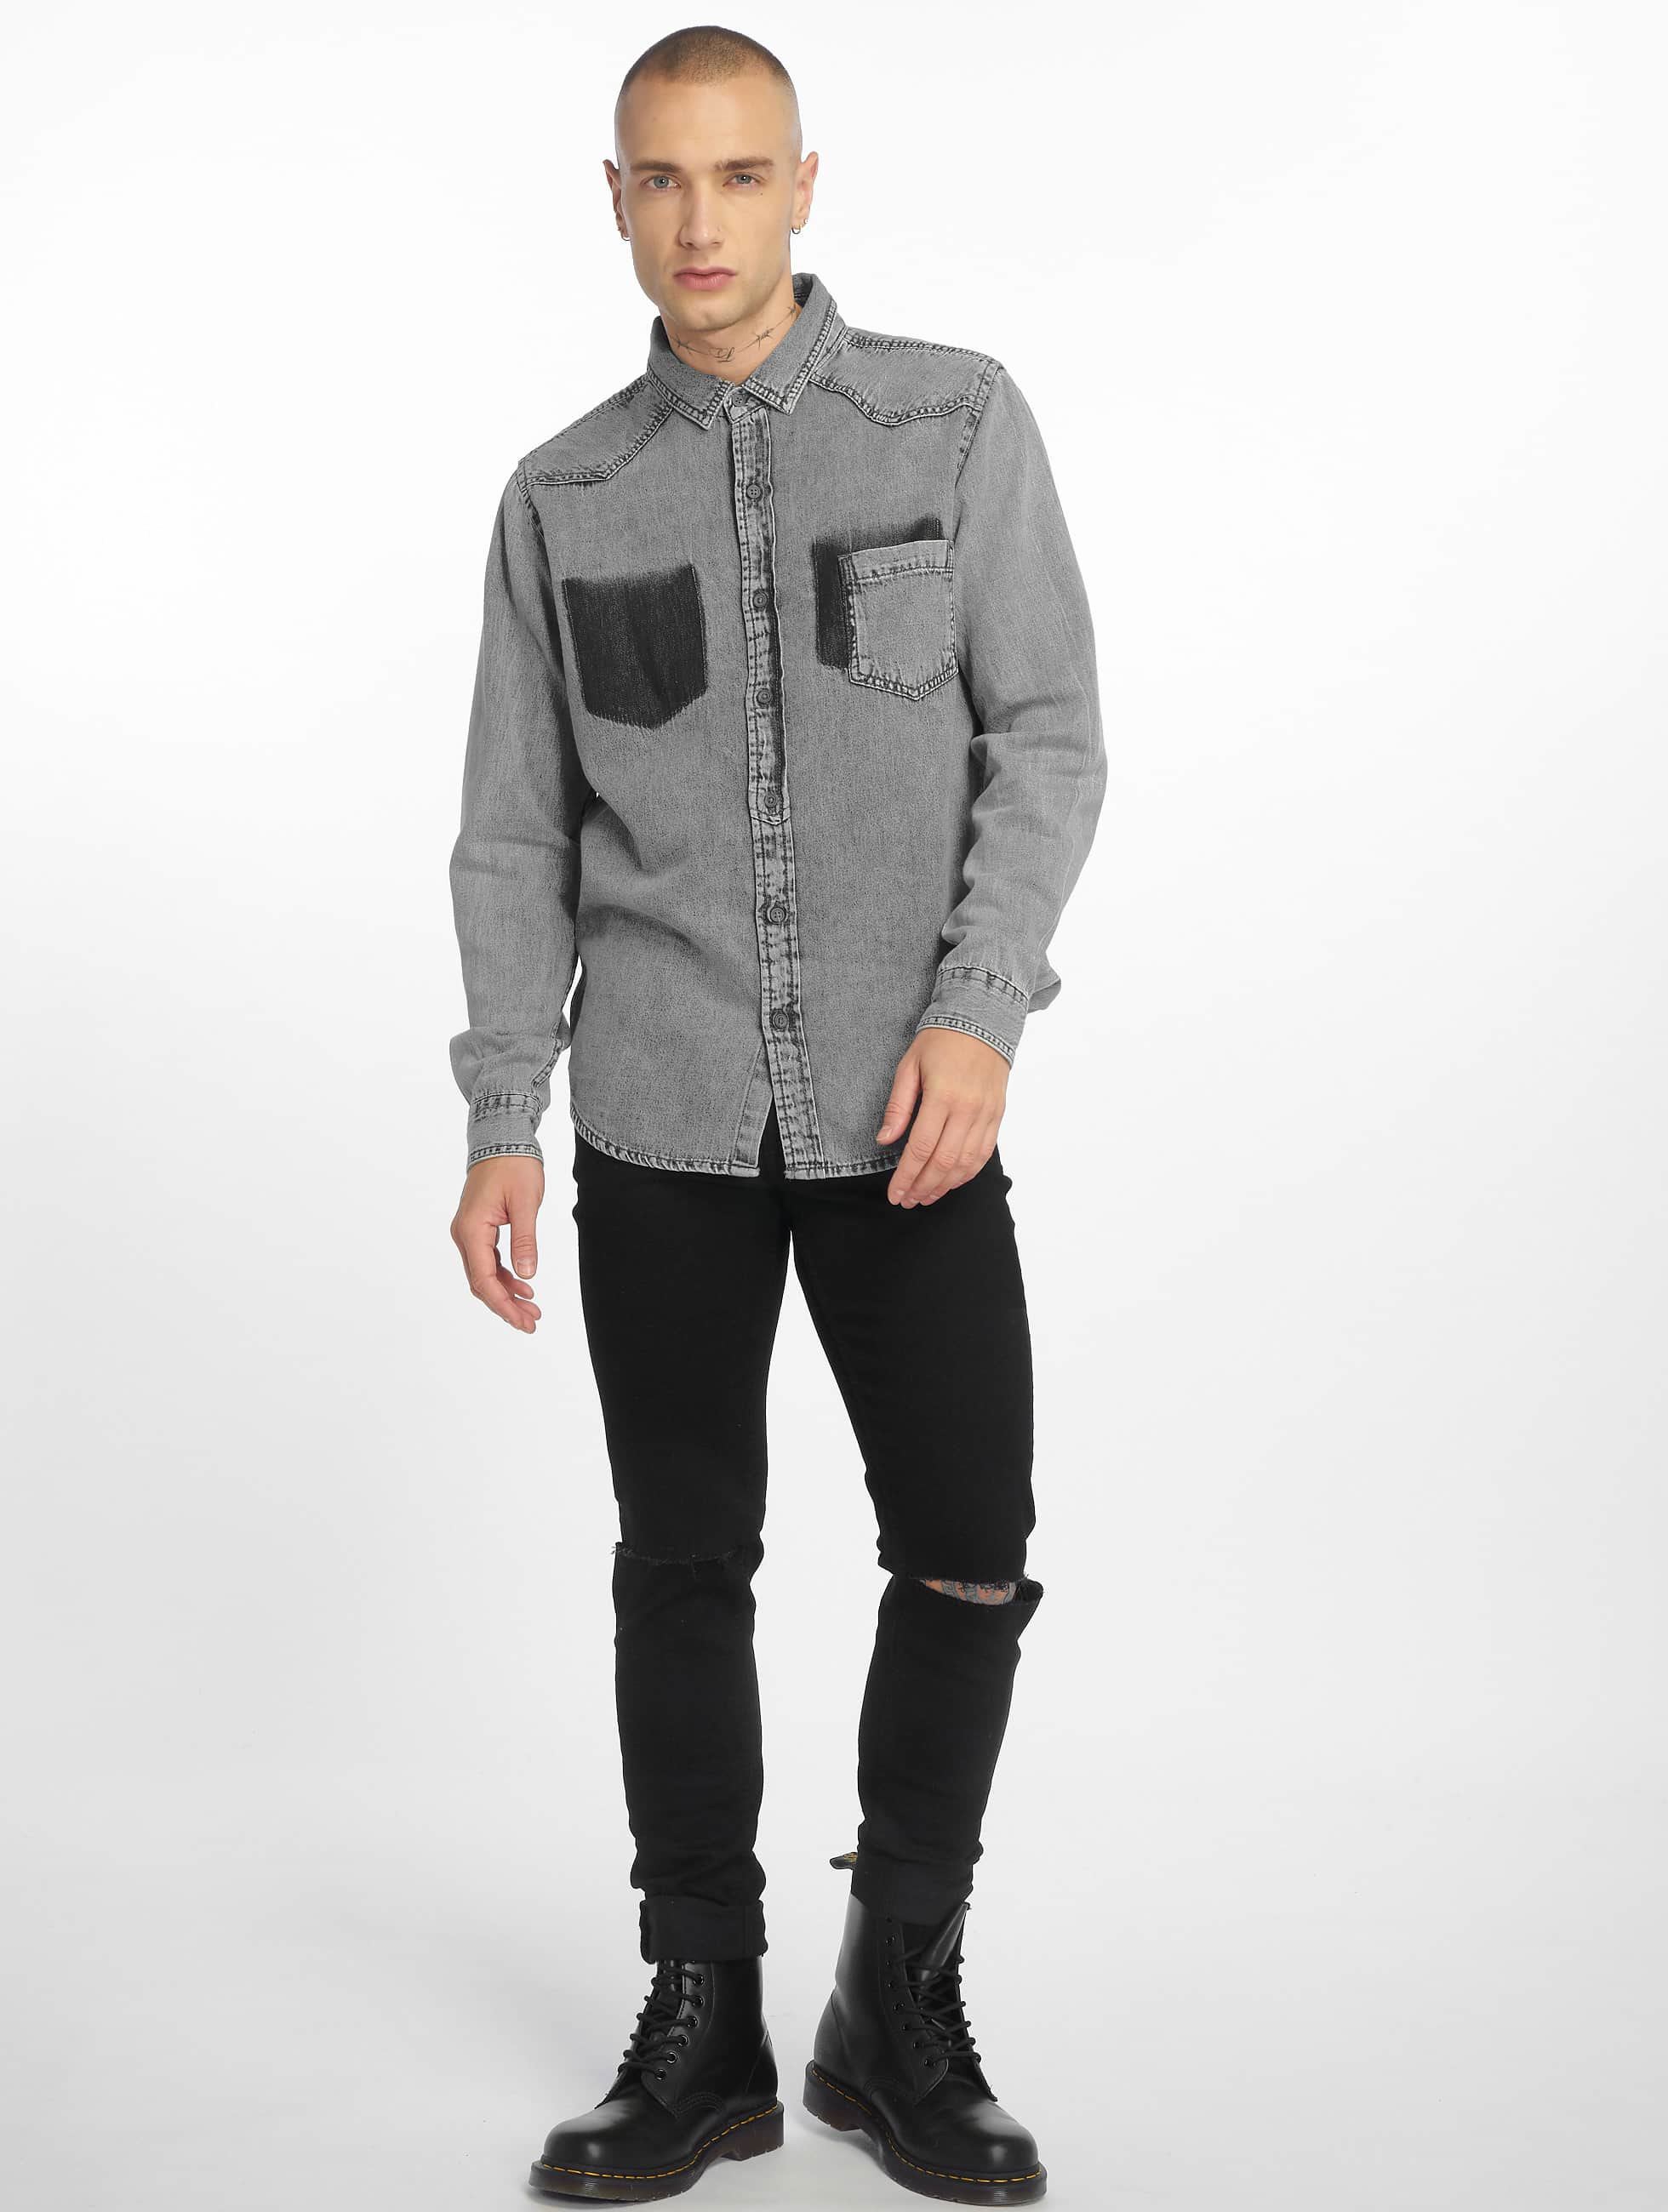 Urban Classics overhemd Denim Pocket grijs